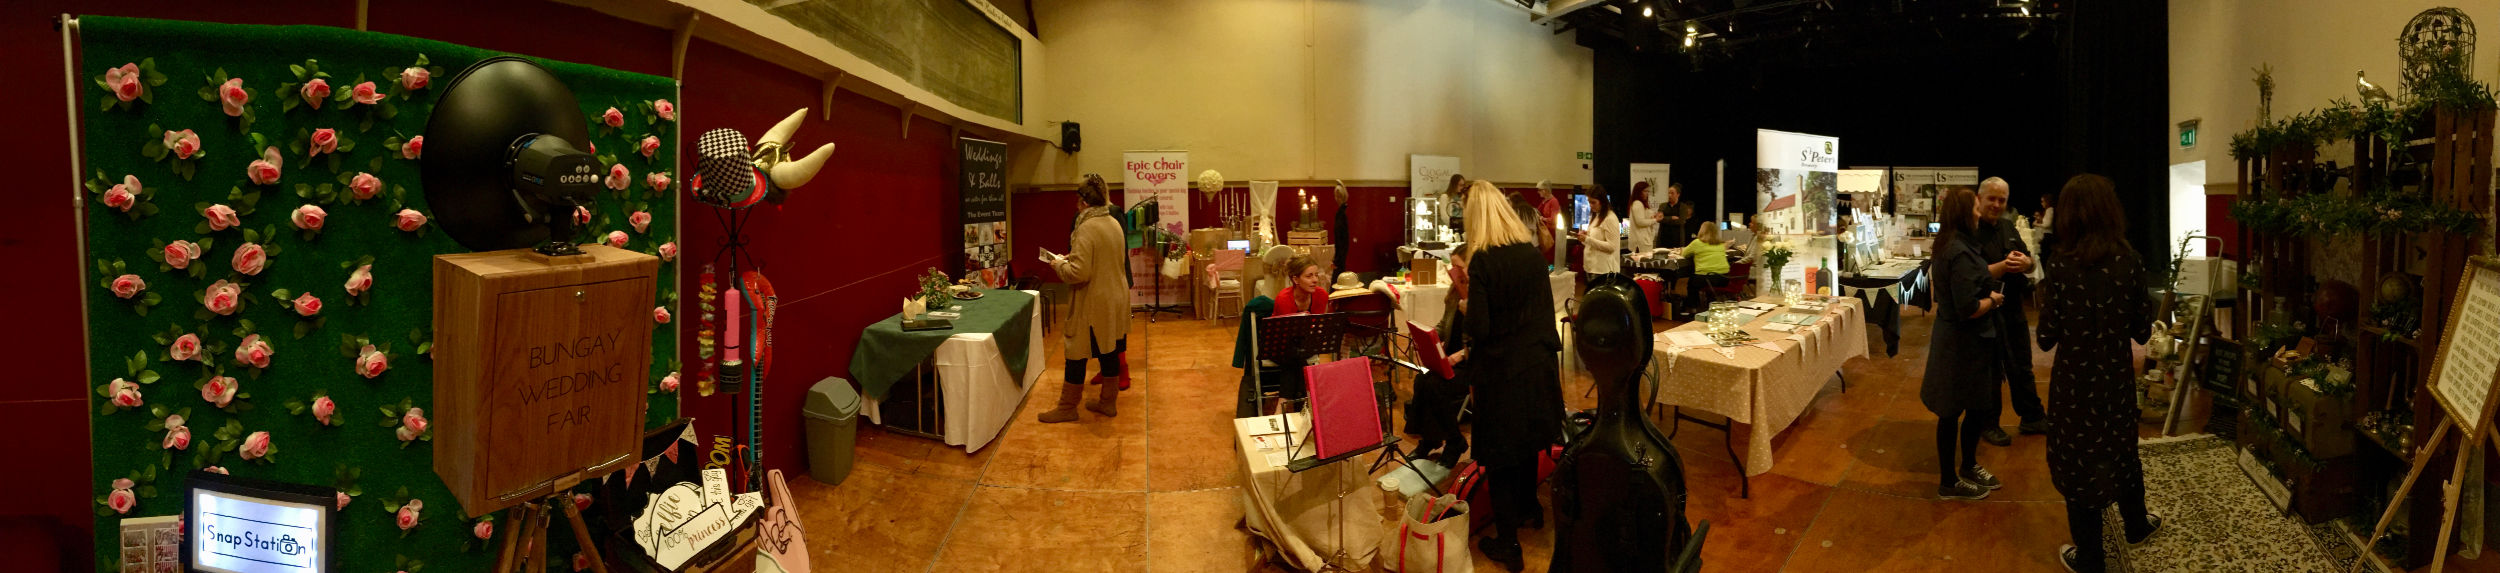 SnapStation photo booths at the Bungay wedding fair.